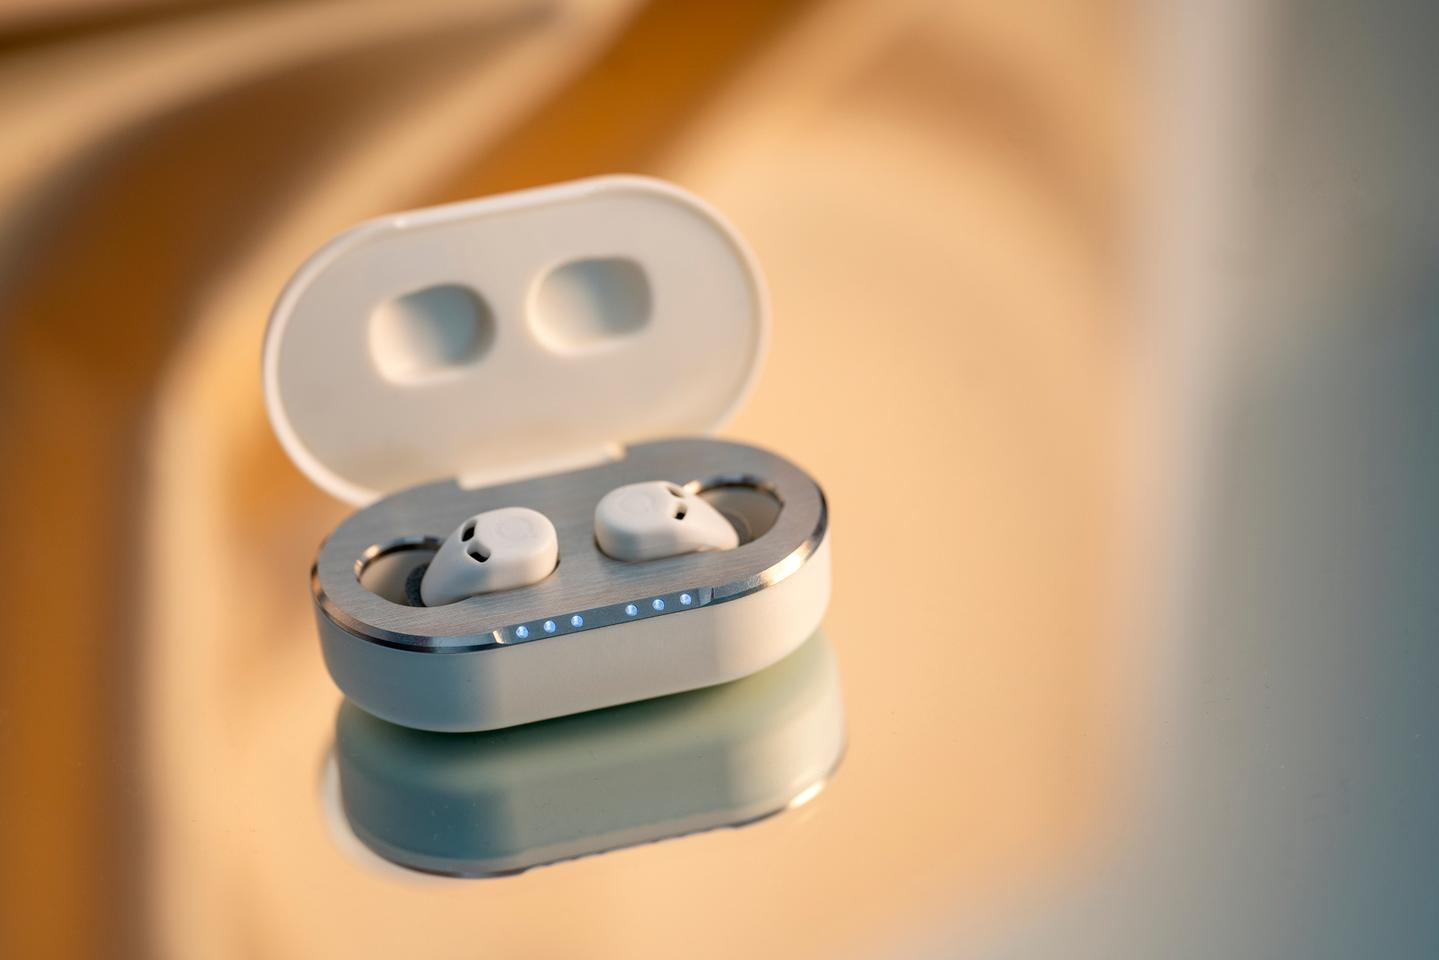 Charge case holds the ear tips off the bottom of the case using magnets